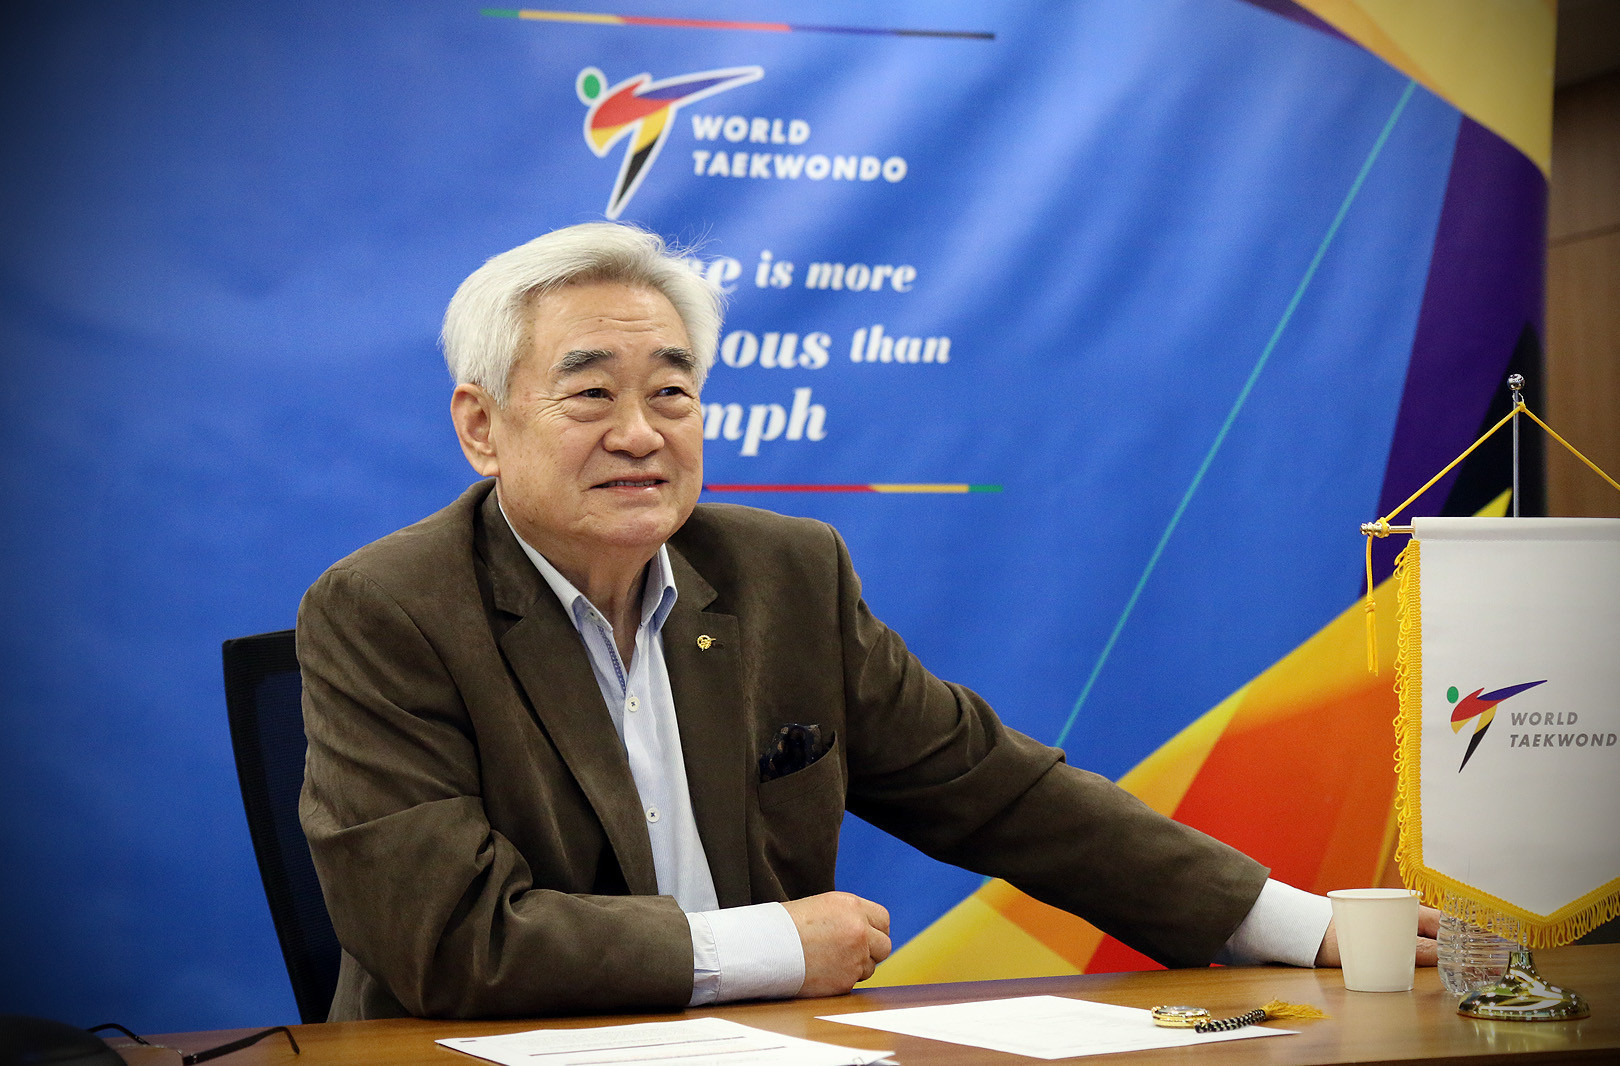 Incumbent Choue to face no challengers in World Taekwondo Presidential election